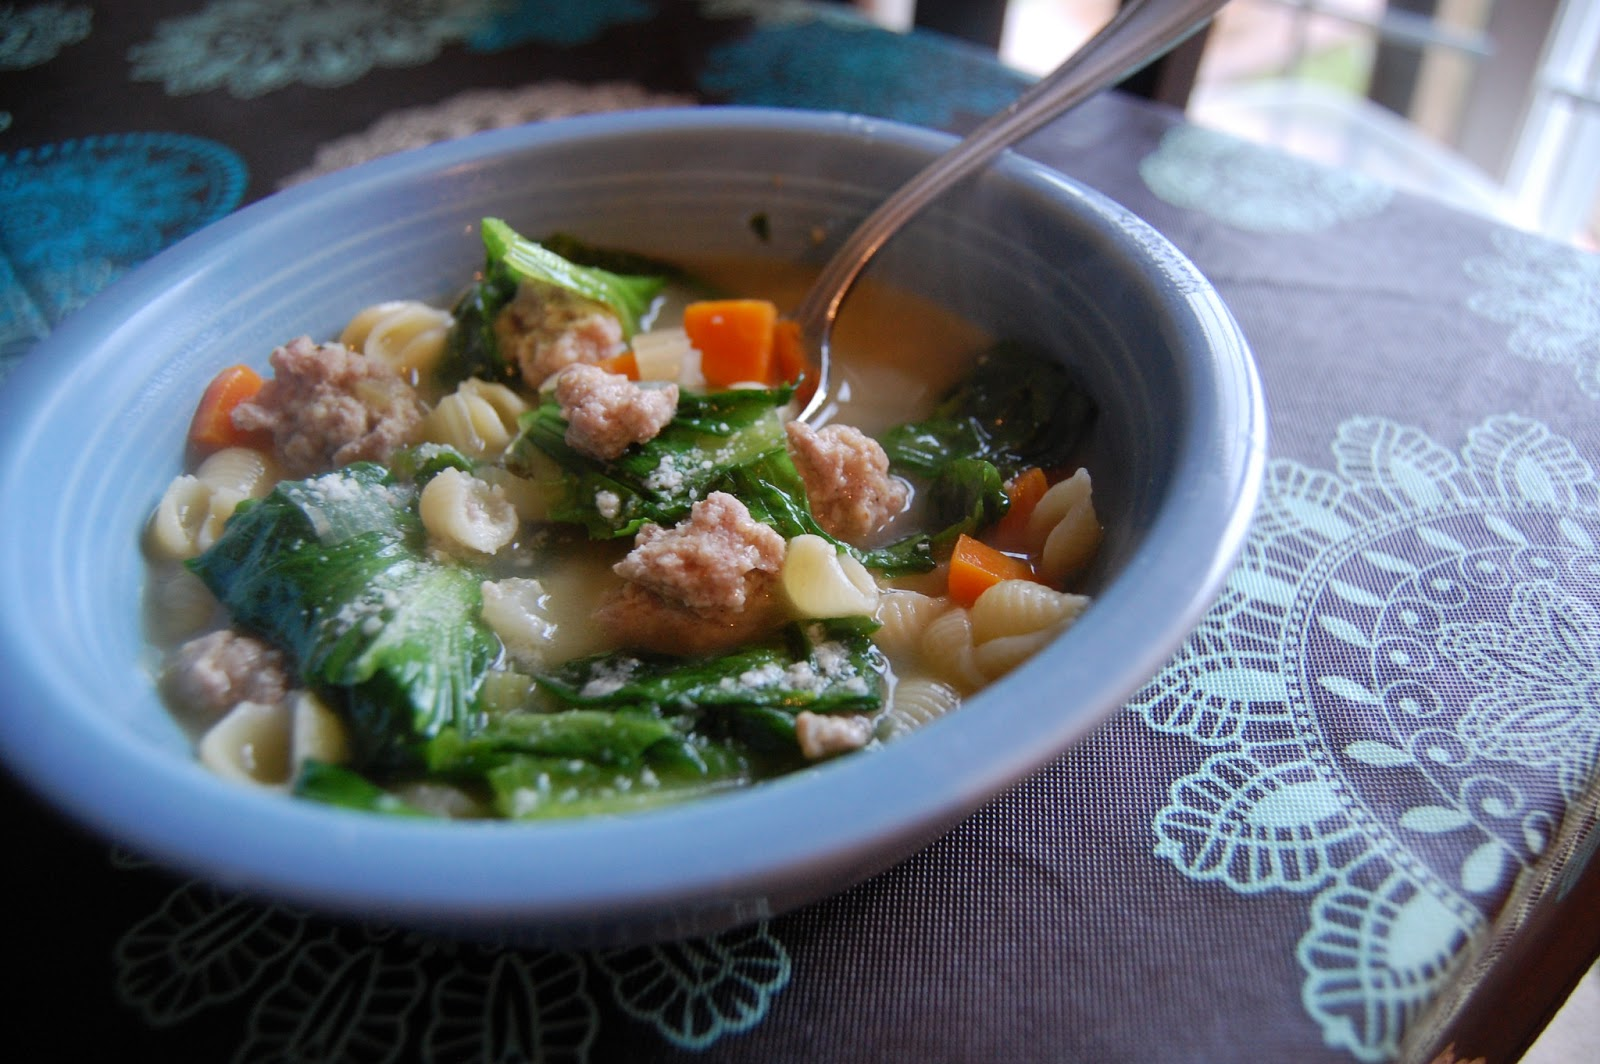 Escarole Meatball Soup Adapted From Rachael Ray 2 Tablespoons Extra Virgin Olive Oil Carrots Chopped Ribs Celery 1 Medium Onion